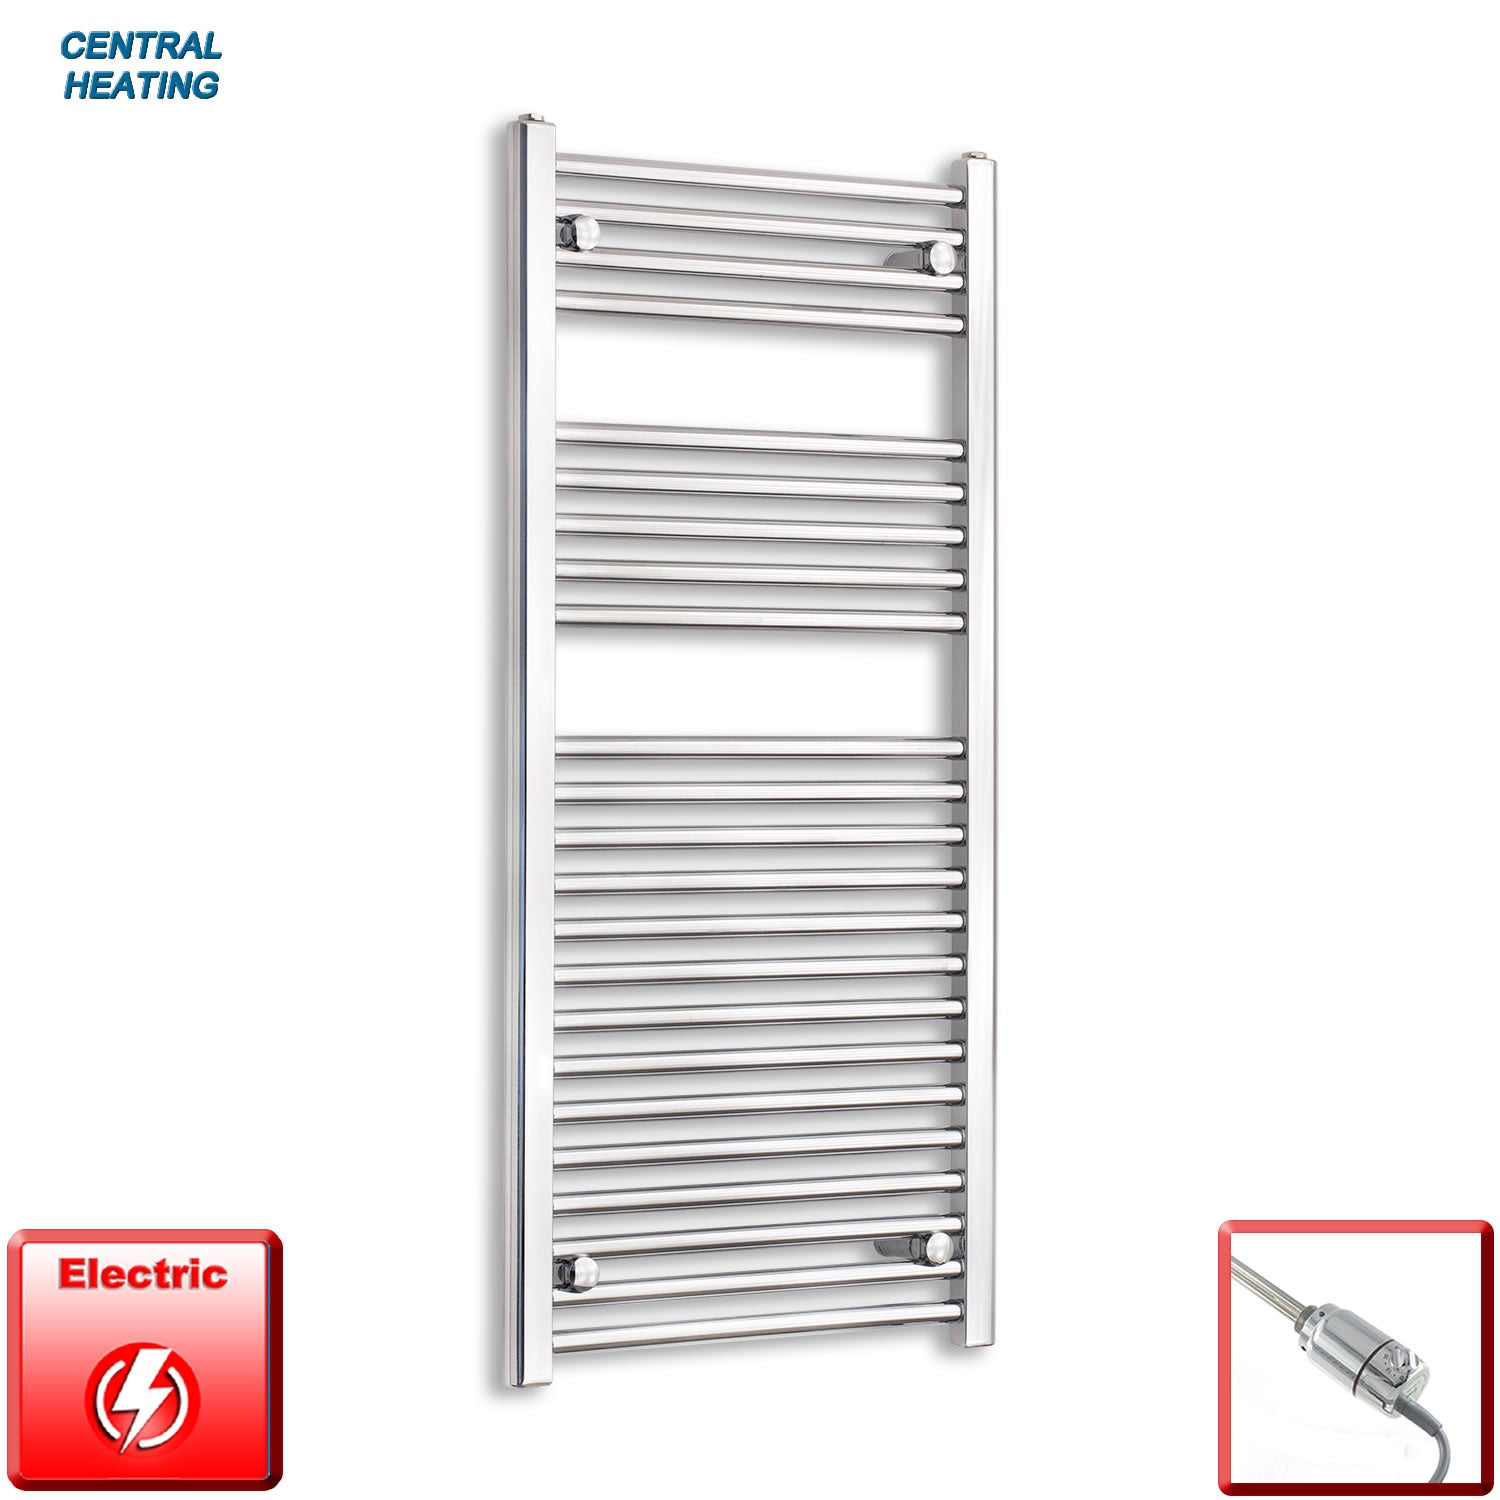 500mm Wide 1100mm High Pre-Filled Black Electric Towel Rail Radiator With Thermostatic GT Element